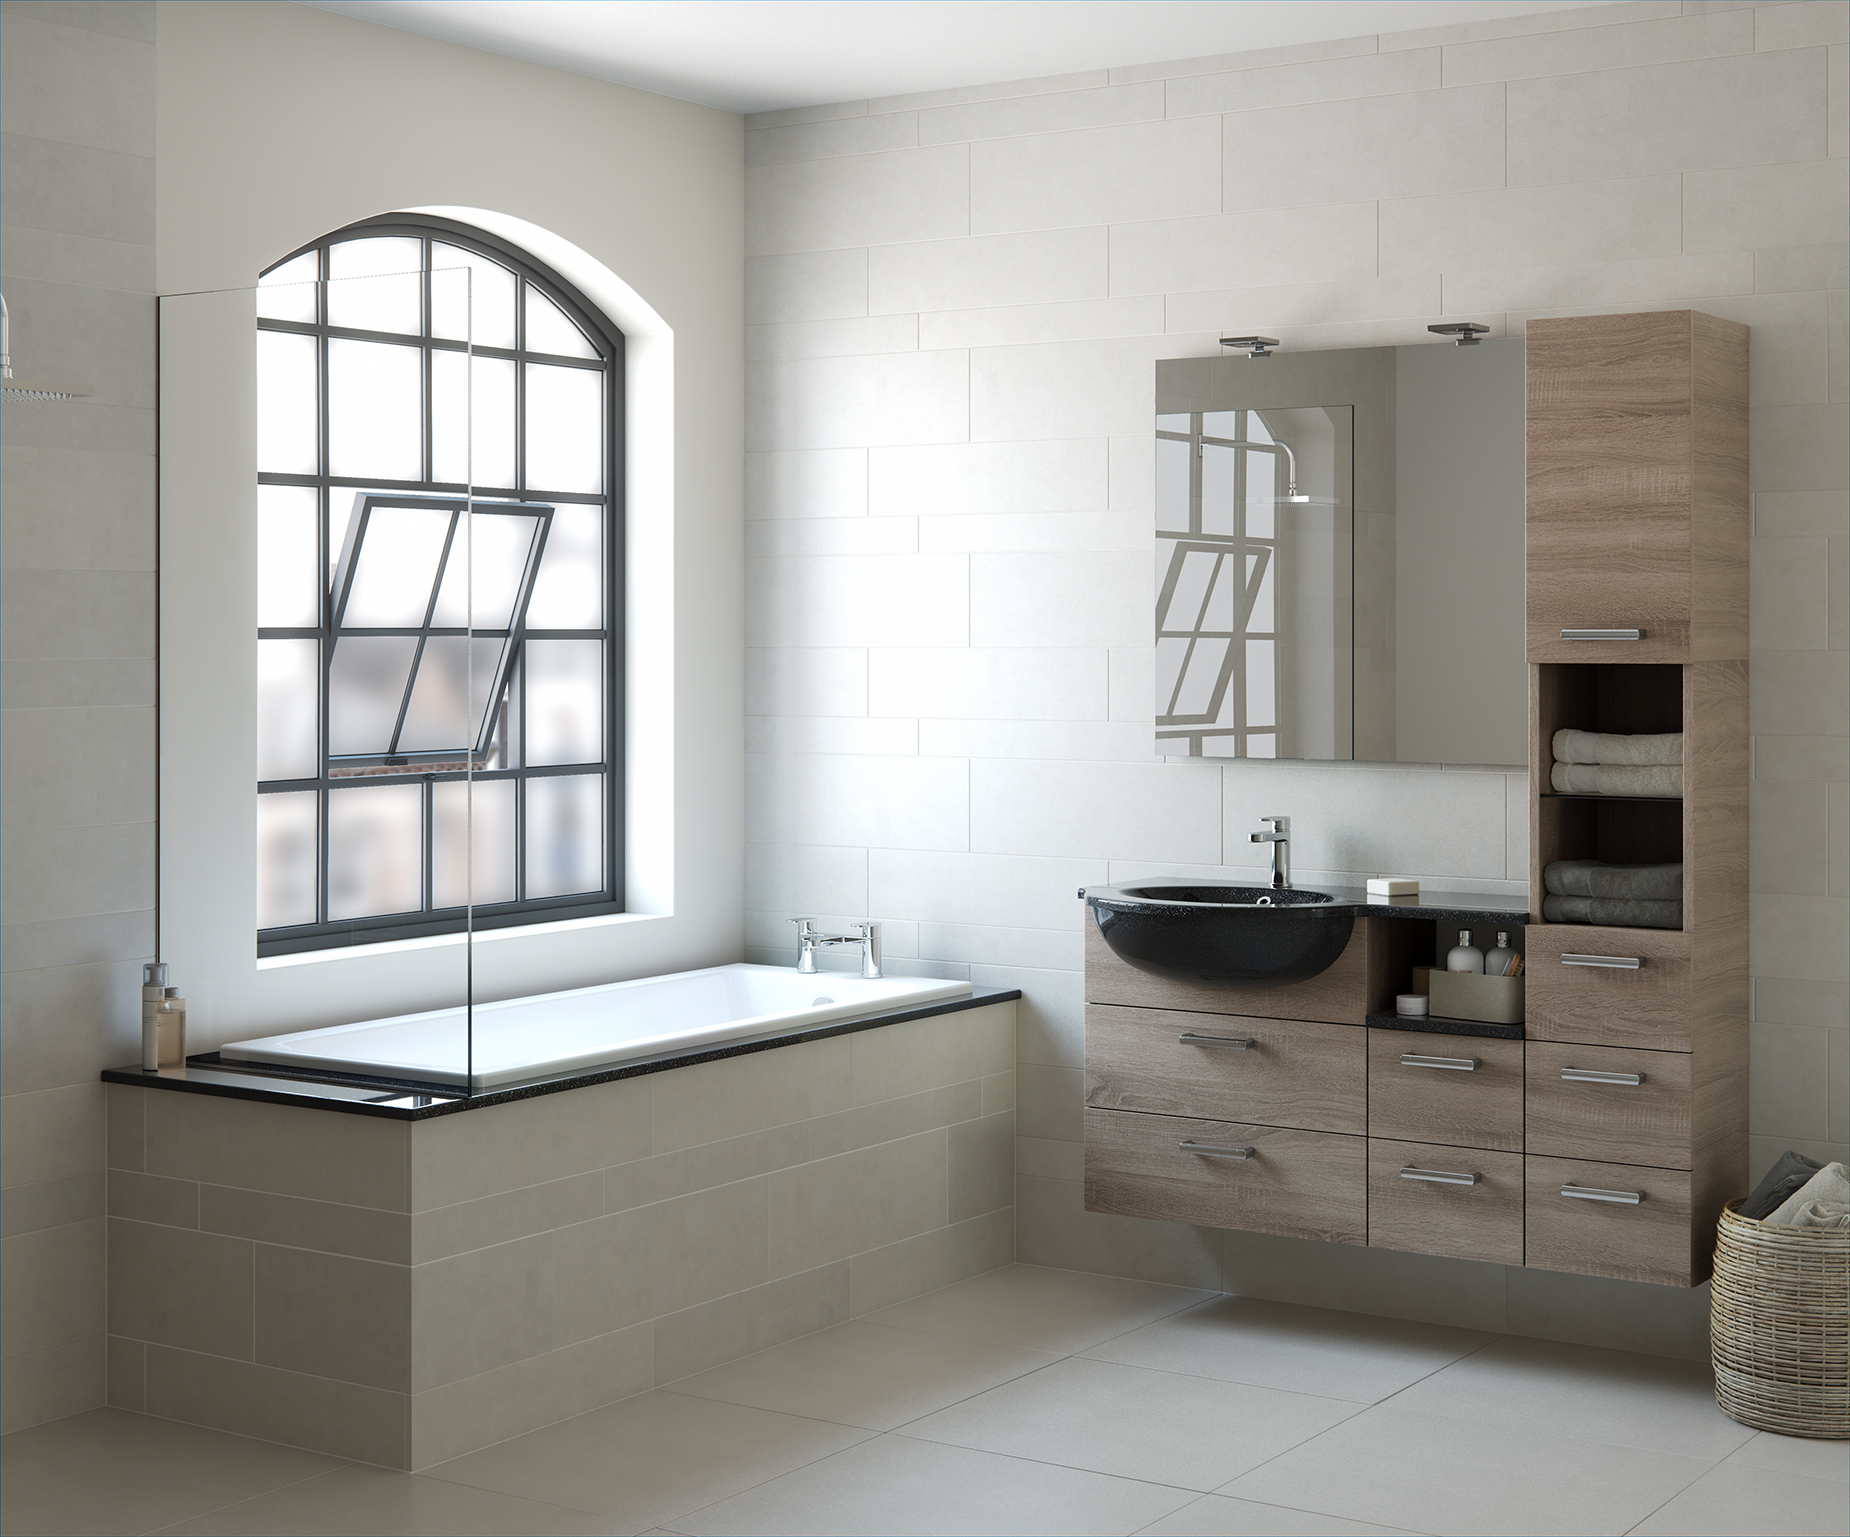 Mereway- bathroom furniture run